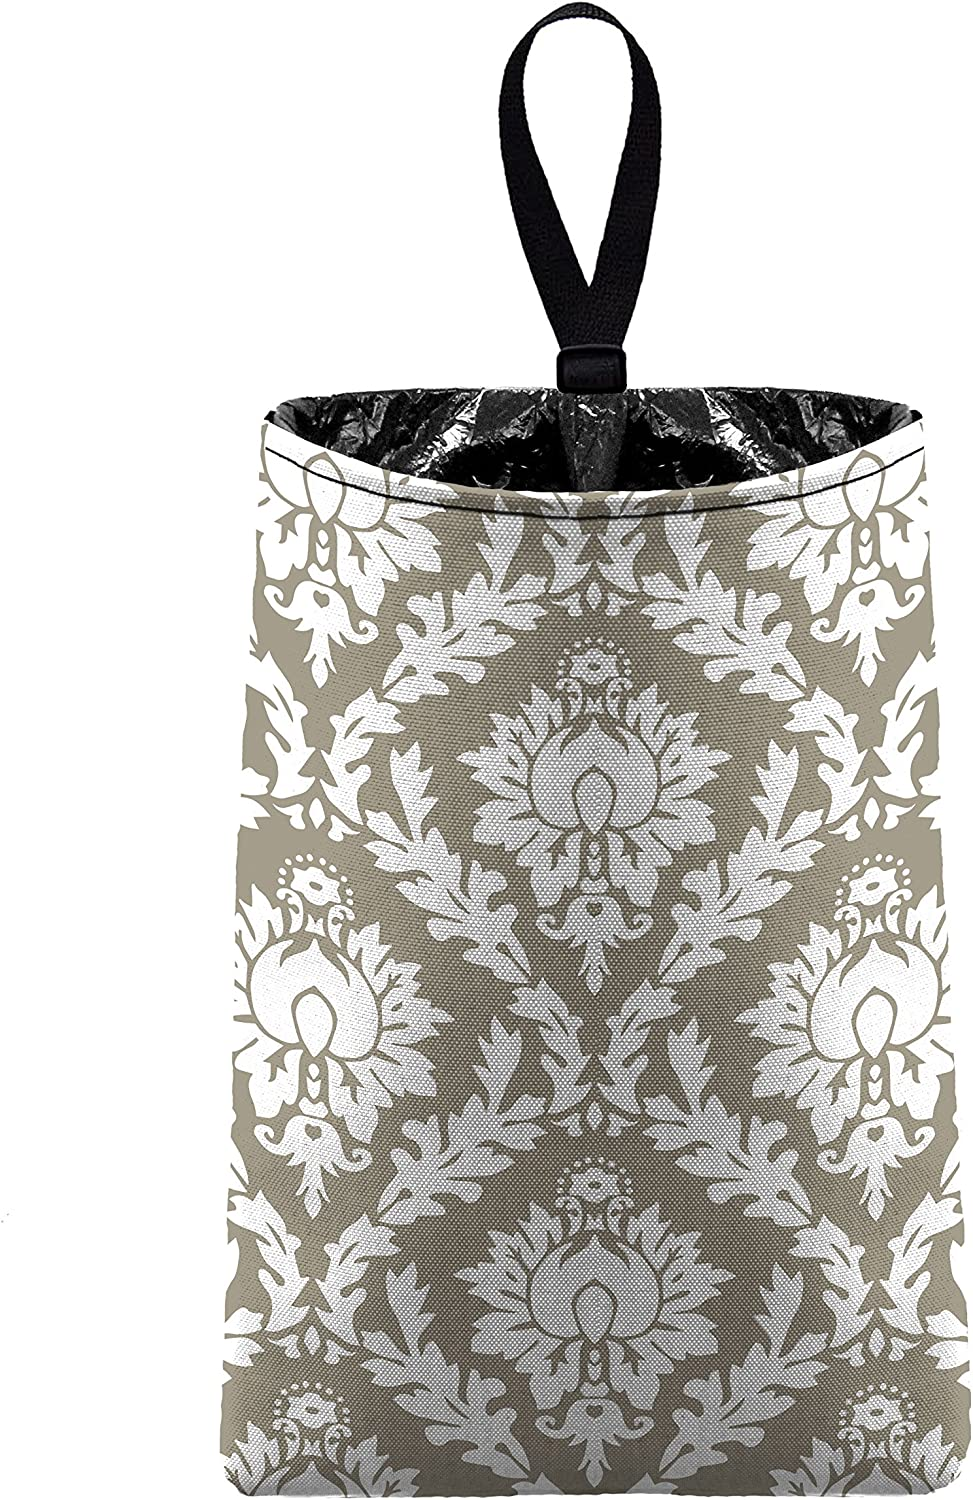 The Mod Mobile Auto Trash Light trash bag Beauty products Damask Free Shipping New car Taupe by